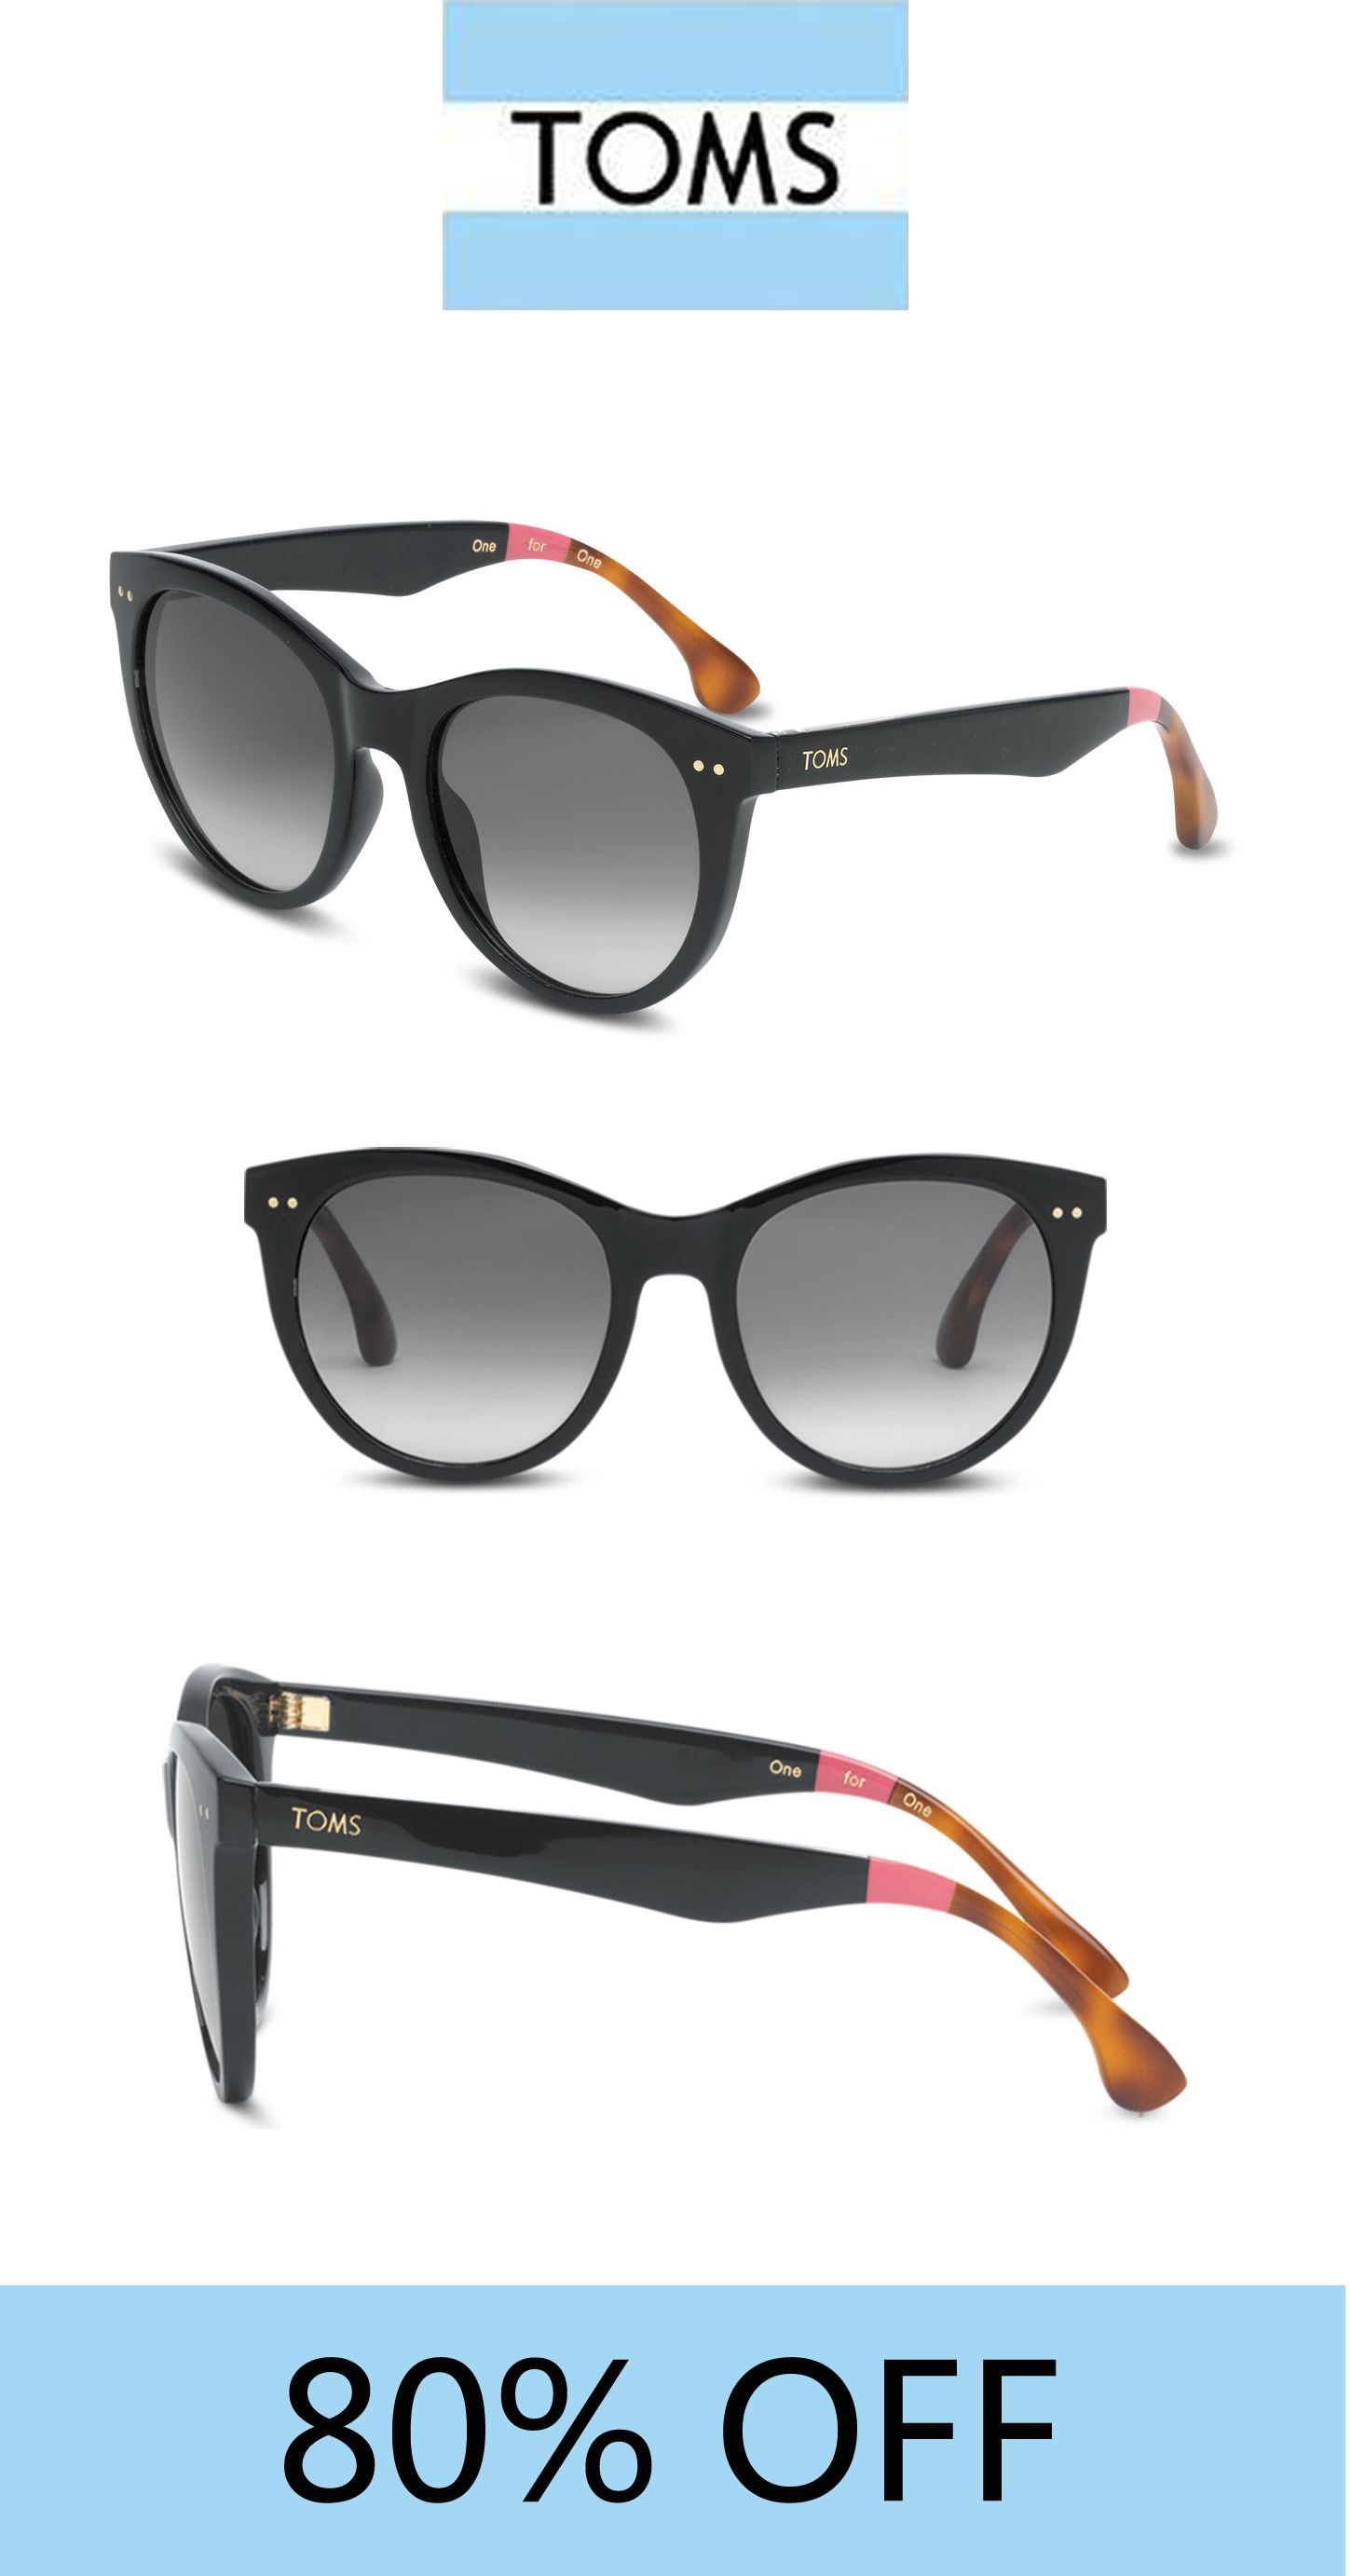 62d4802a91c7 Socially-conscious shades! TOMS sunglasses